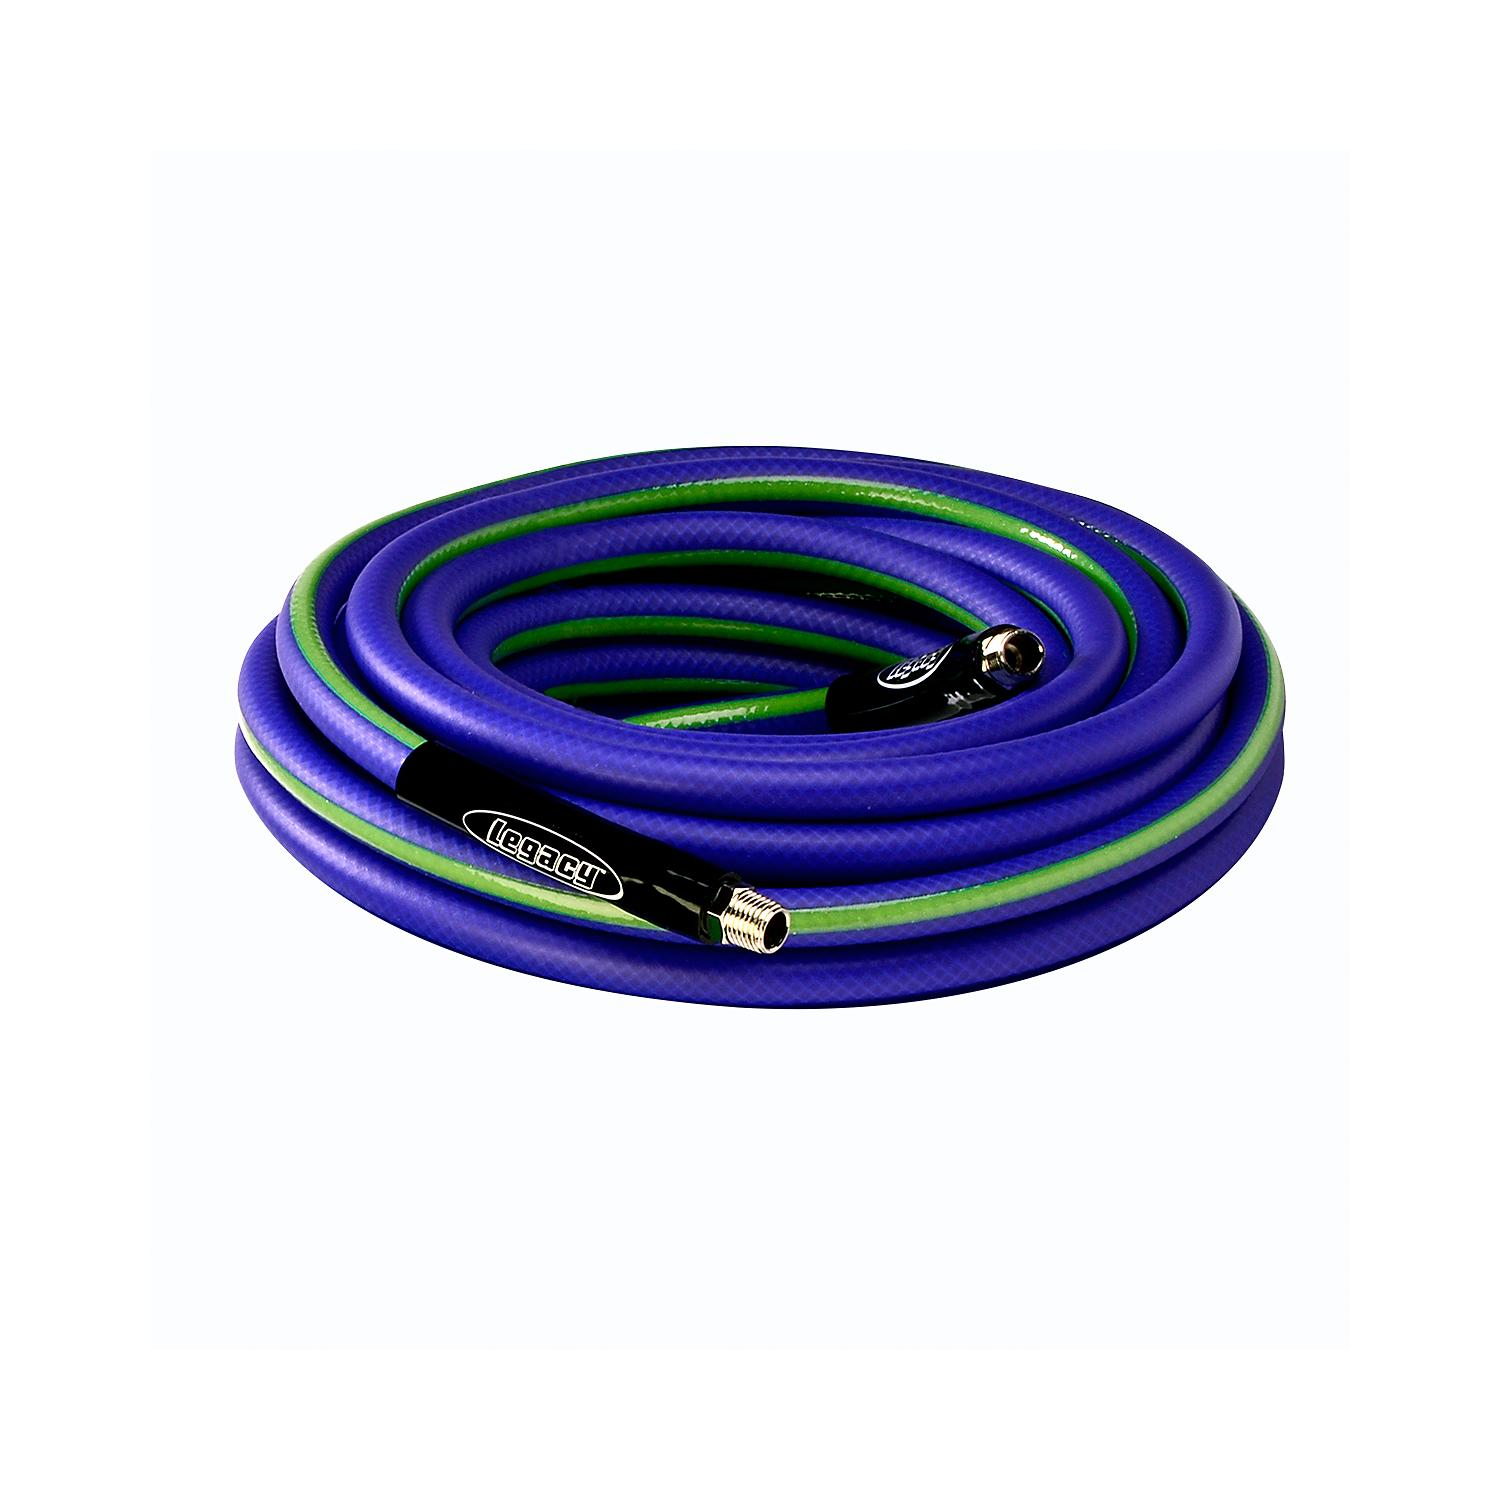 Legacy AH90B 25 Feet X 3/8 ID 300 psi Rated Carpet Cleaning Hose